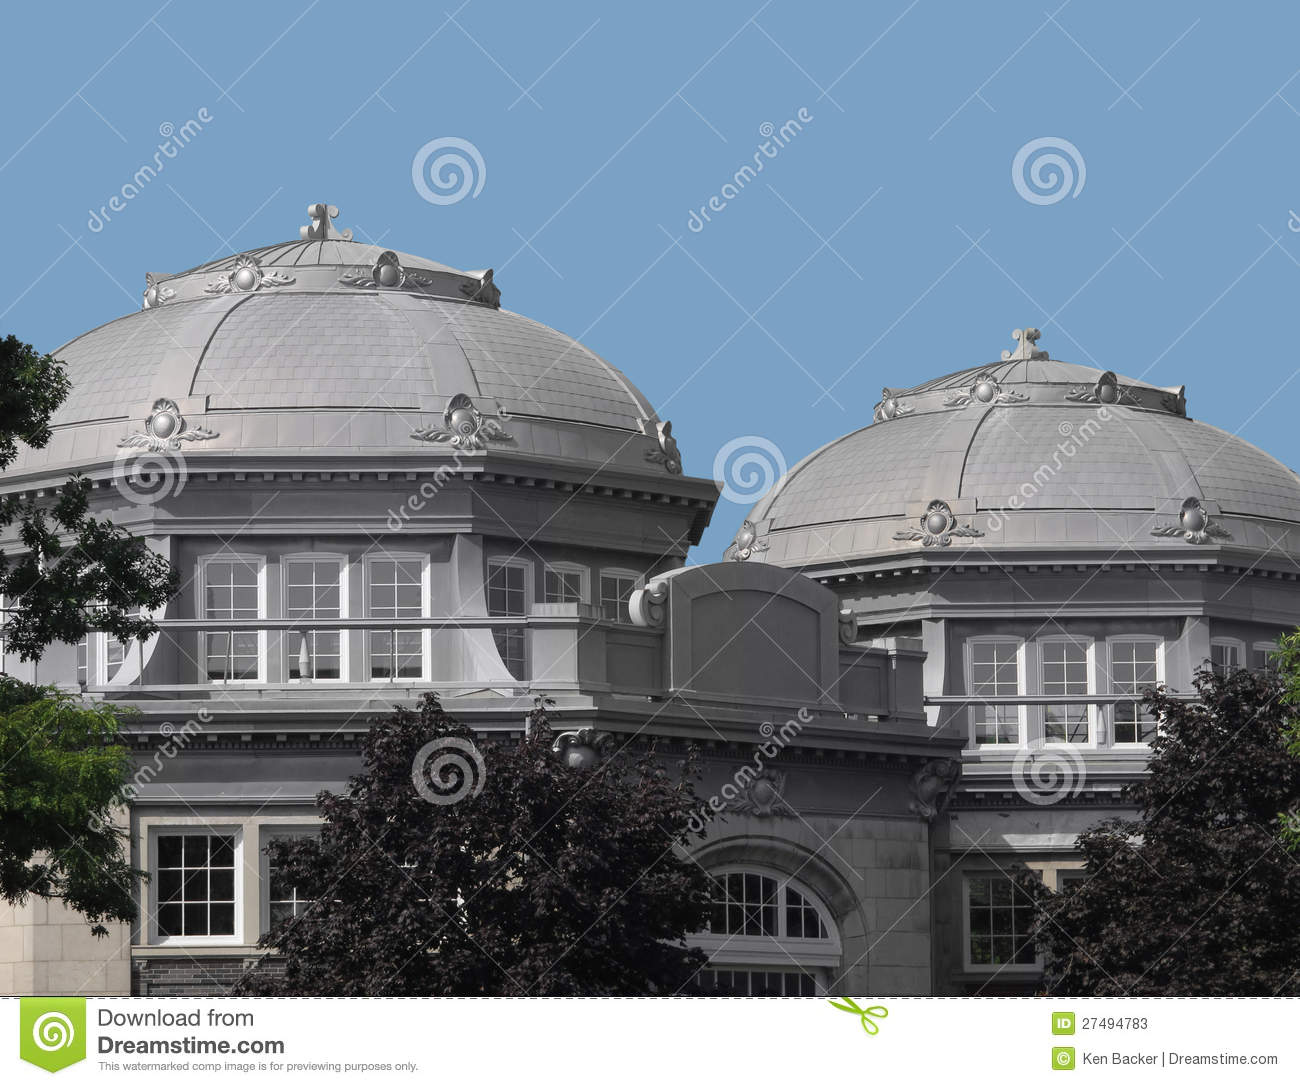 Construction Concrete Dome Home: Two Gray Concrete And Stone Domes. Stock Photos